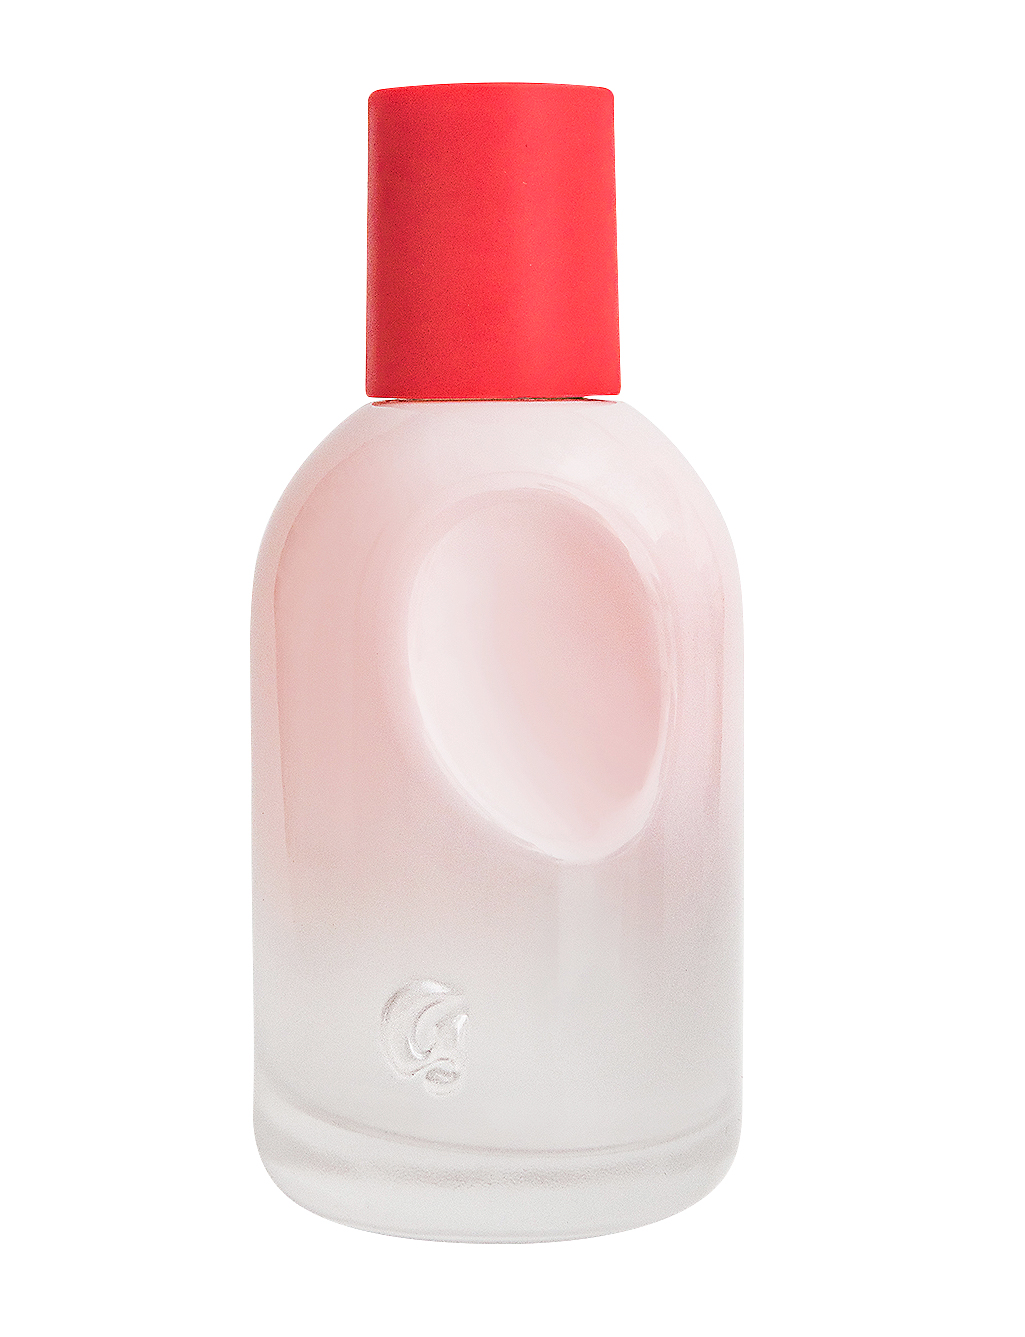 glossier. contact jackie_fields@peoplemag.com